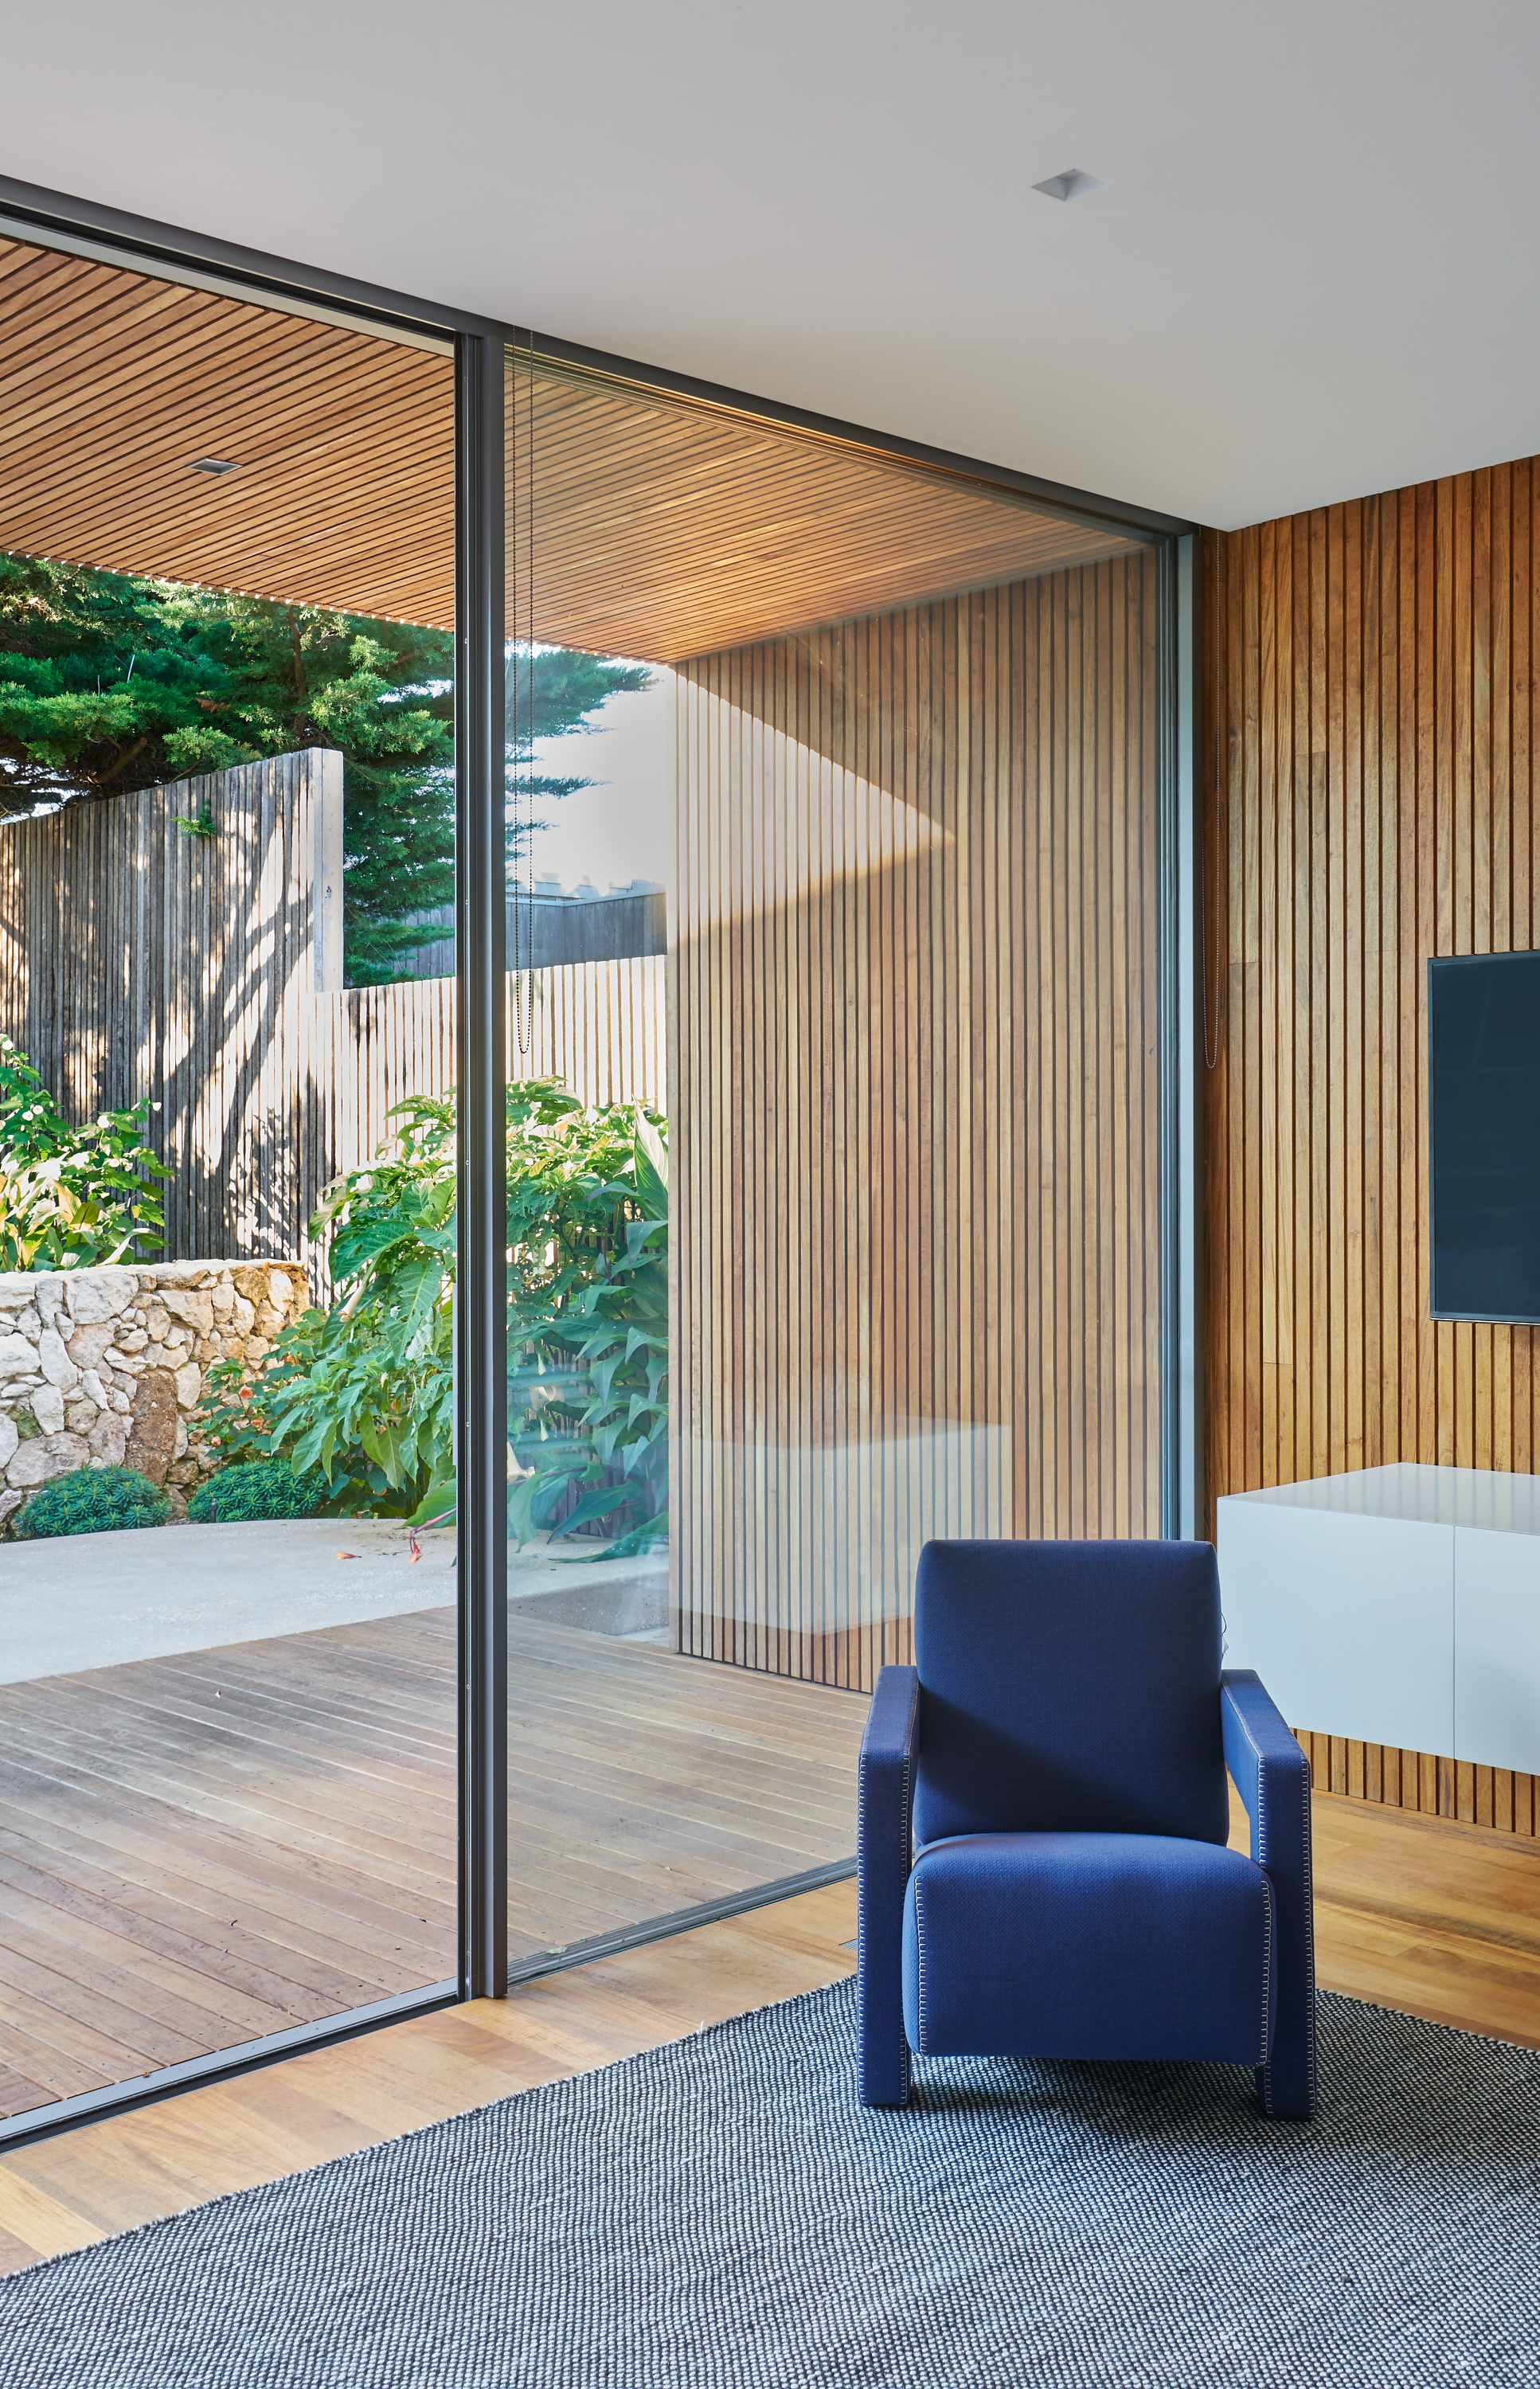 Portsea Pavillion, a residential project whose architecture and interiors are designed by Carr Design